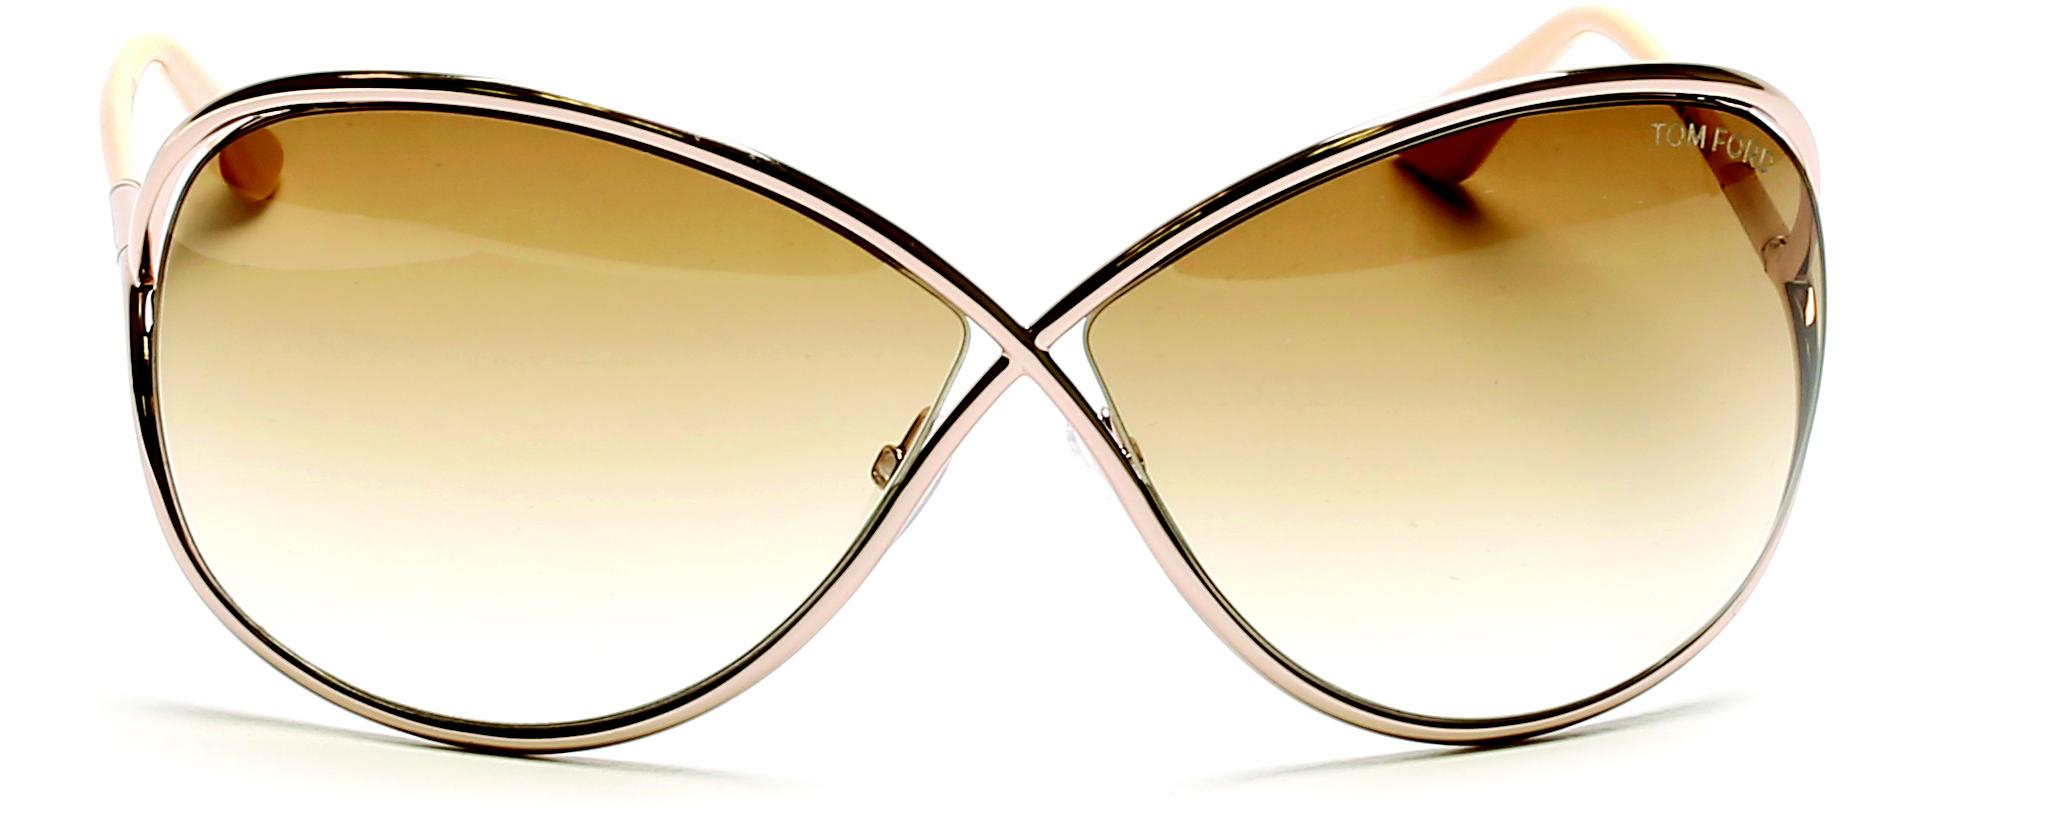 45179647d2f7 Tom Ford - Brown 0130 Miranda Round Around Sunglasses - Lyst. View  fullscreen